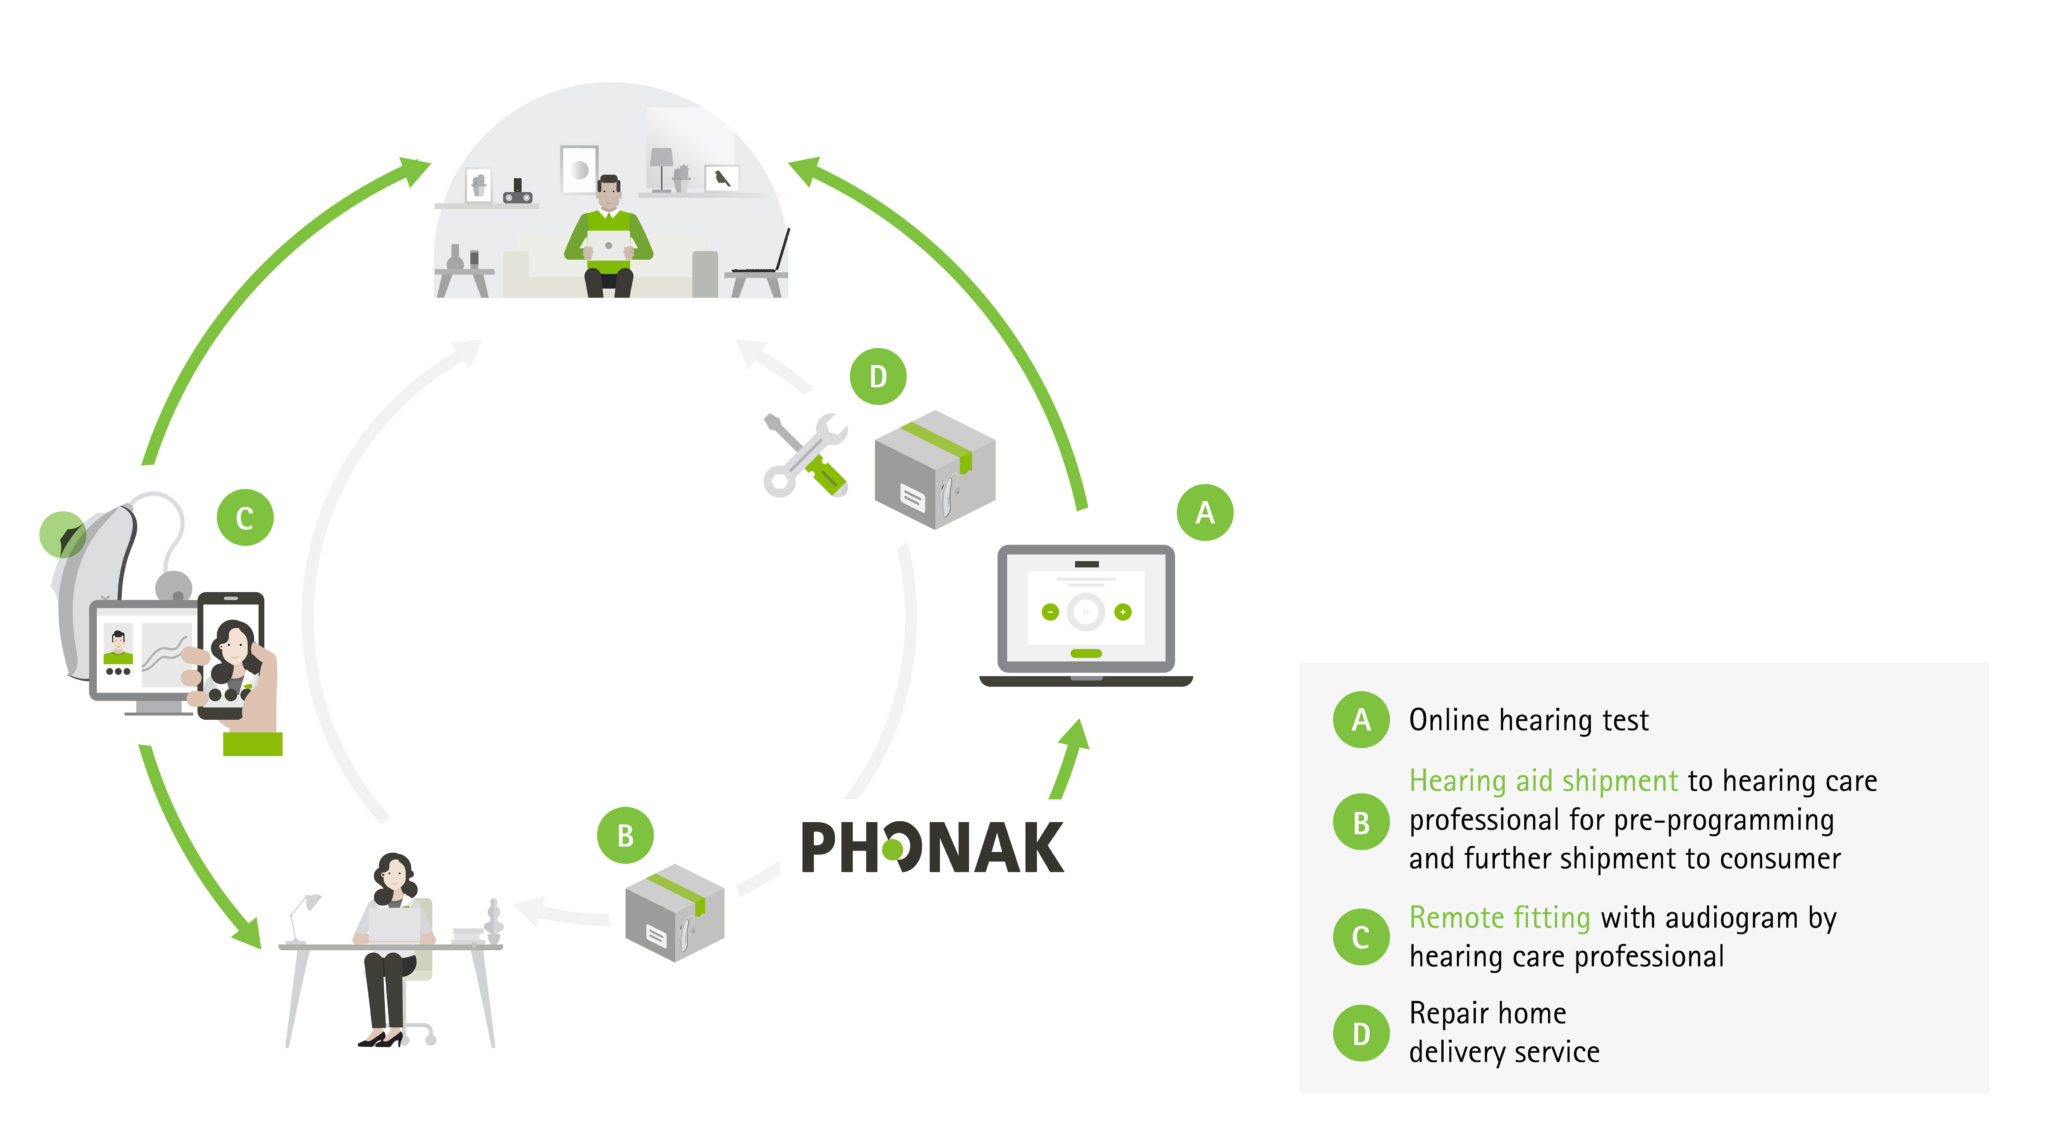 phonak remote hearing aid fitting